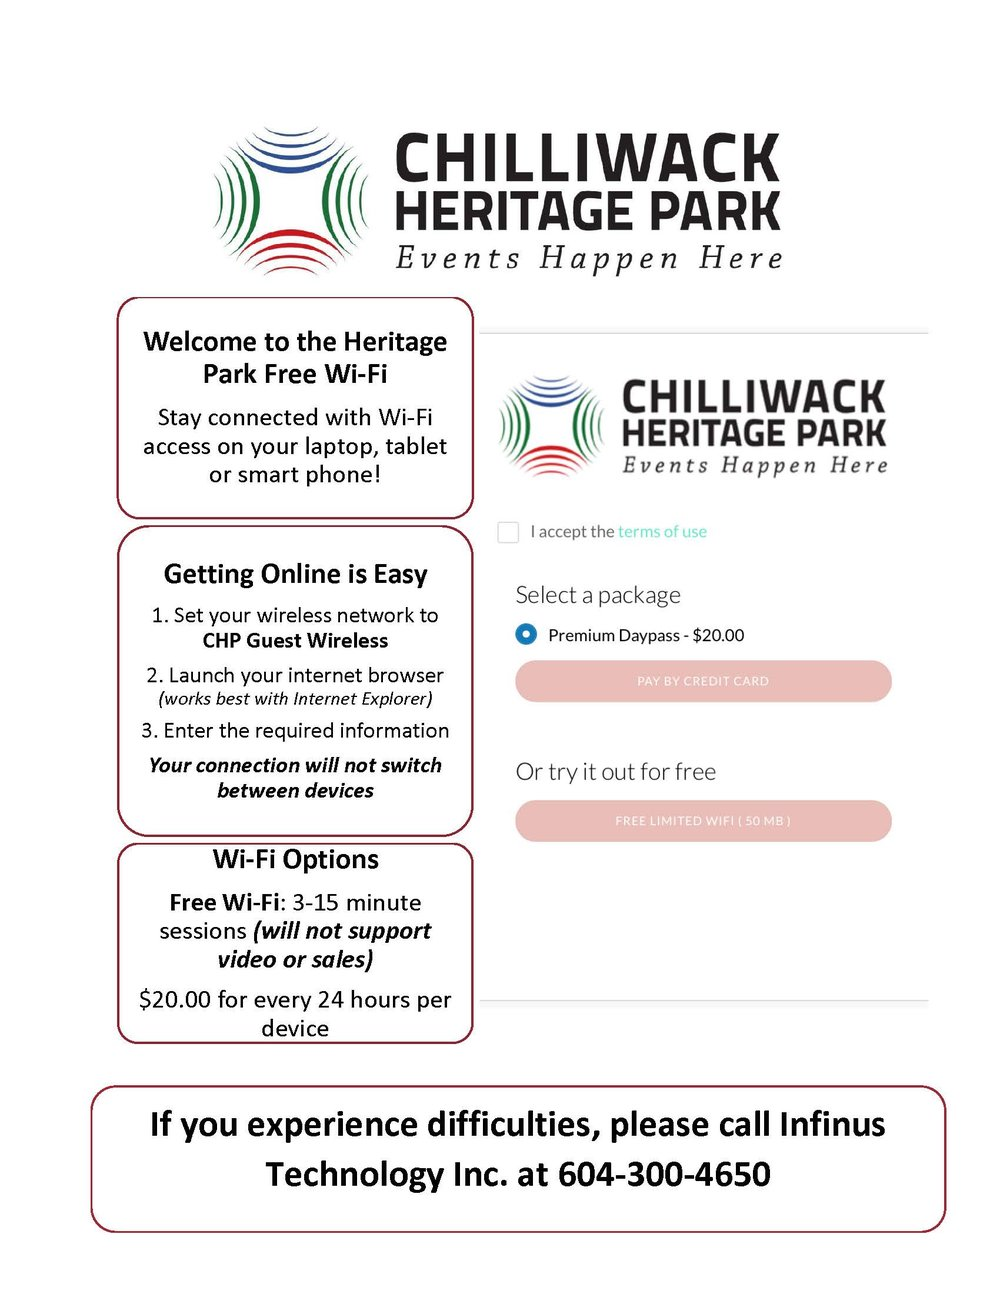 Heritage Park Wi-Fi Updated August 11, 2017.jpg